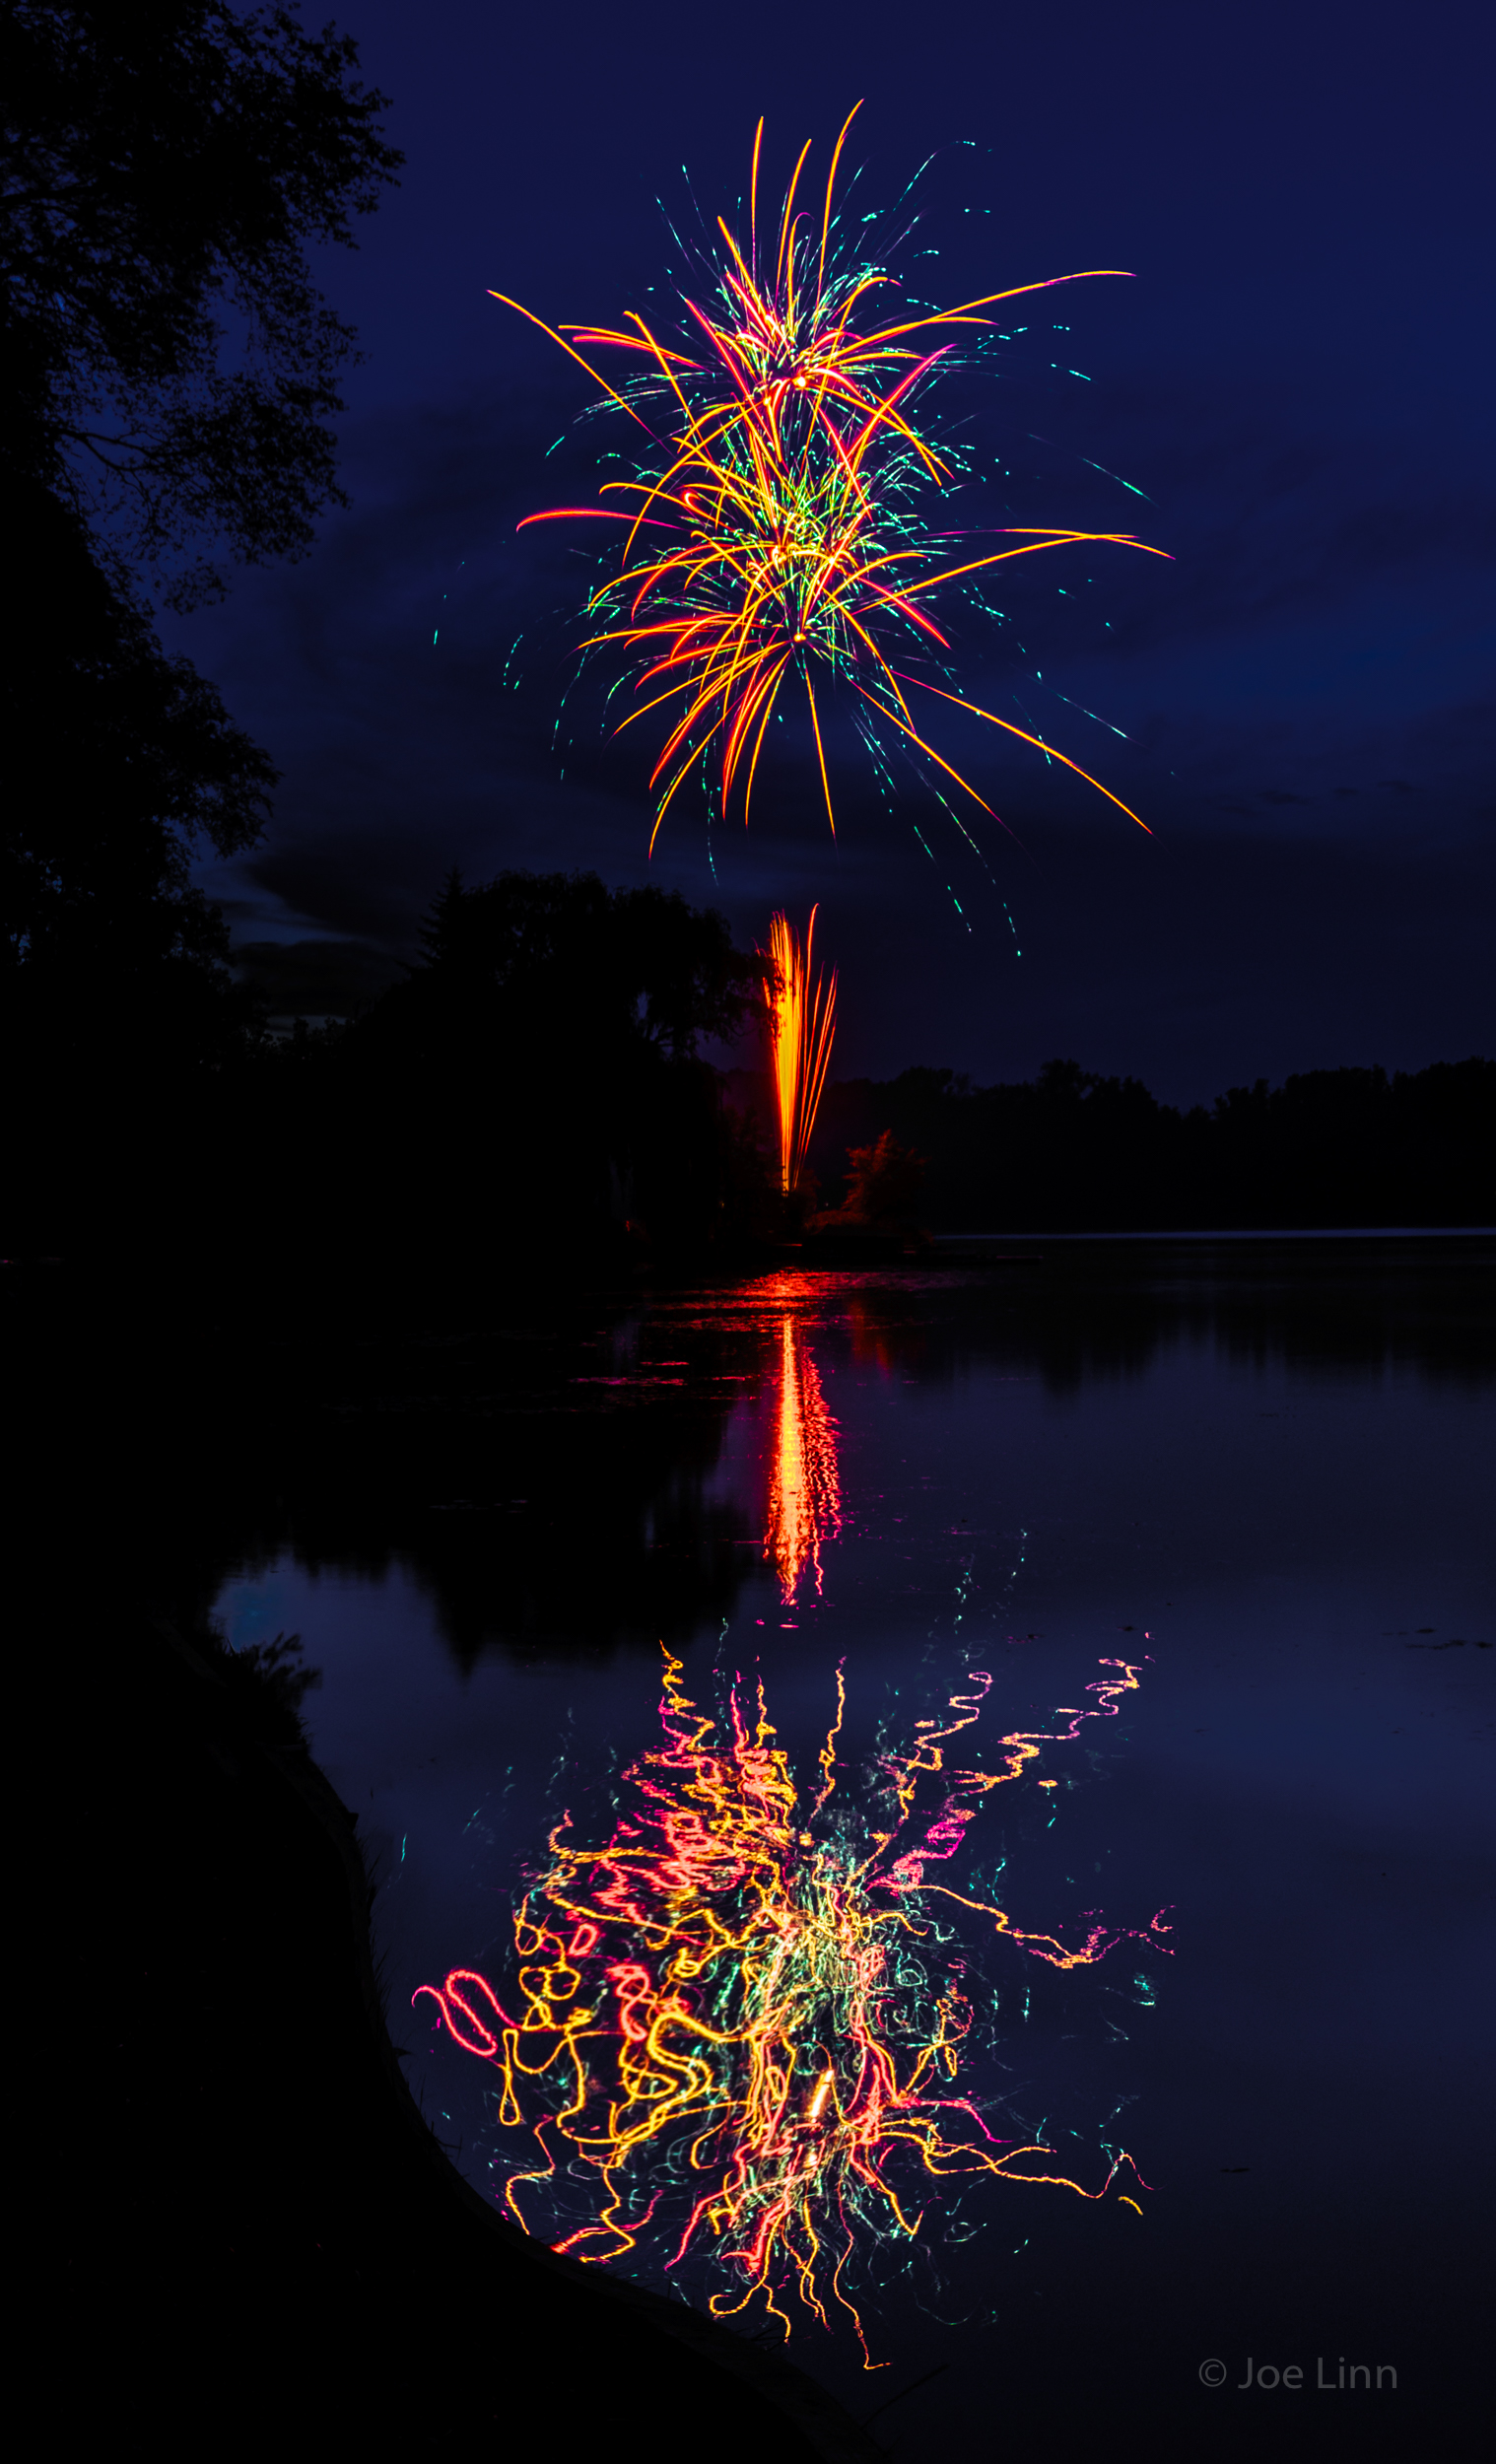 Fireworks reflections 3